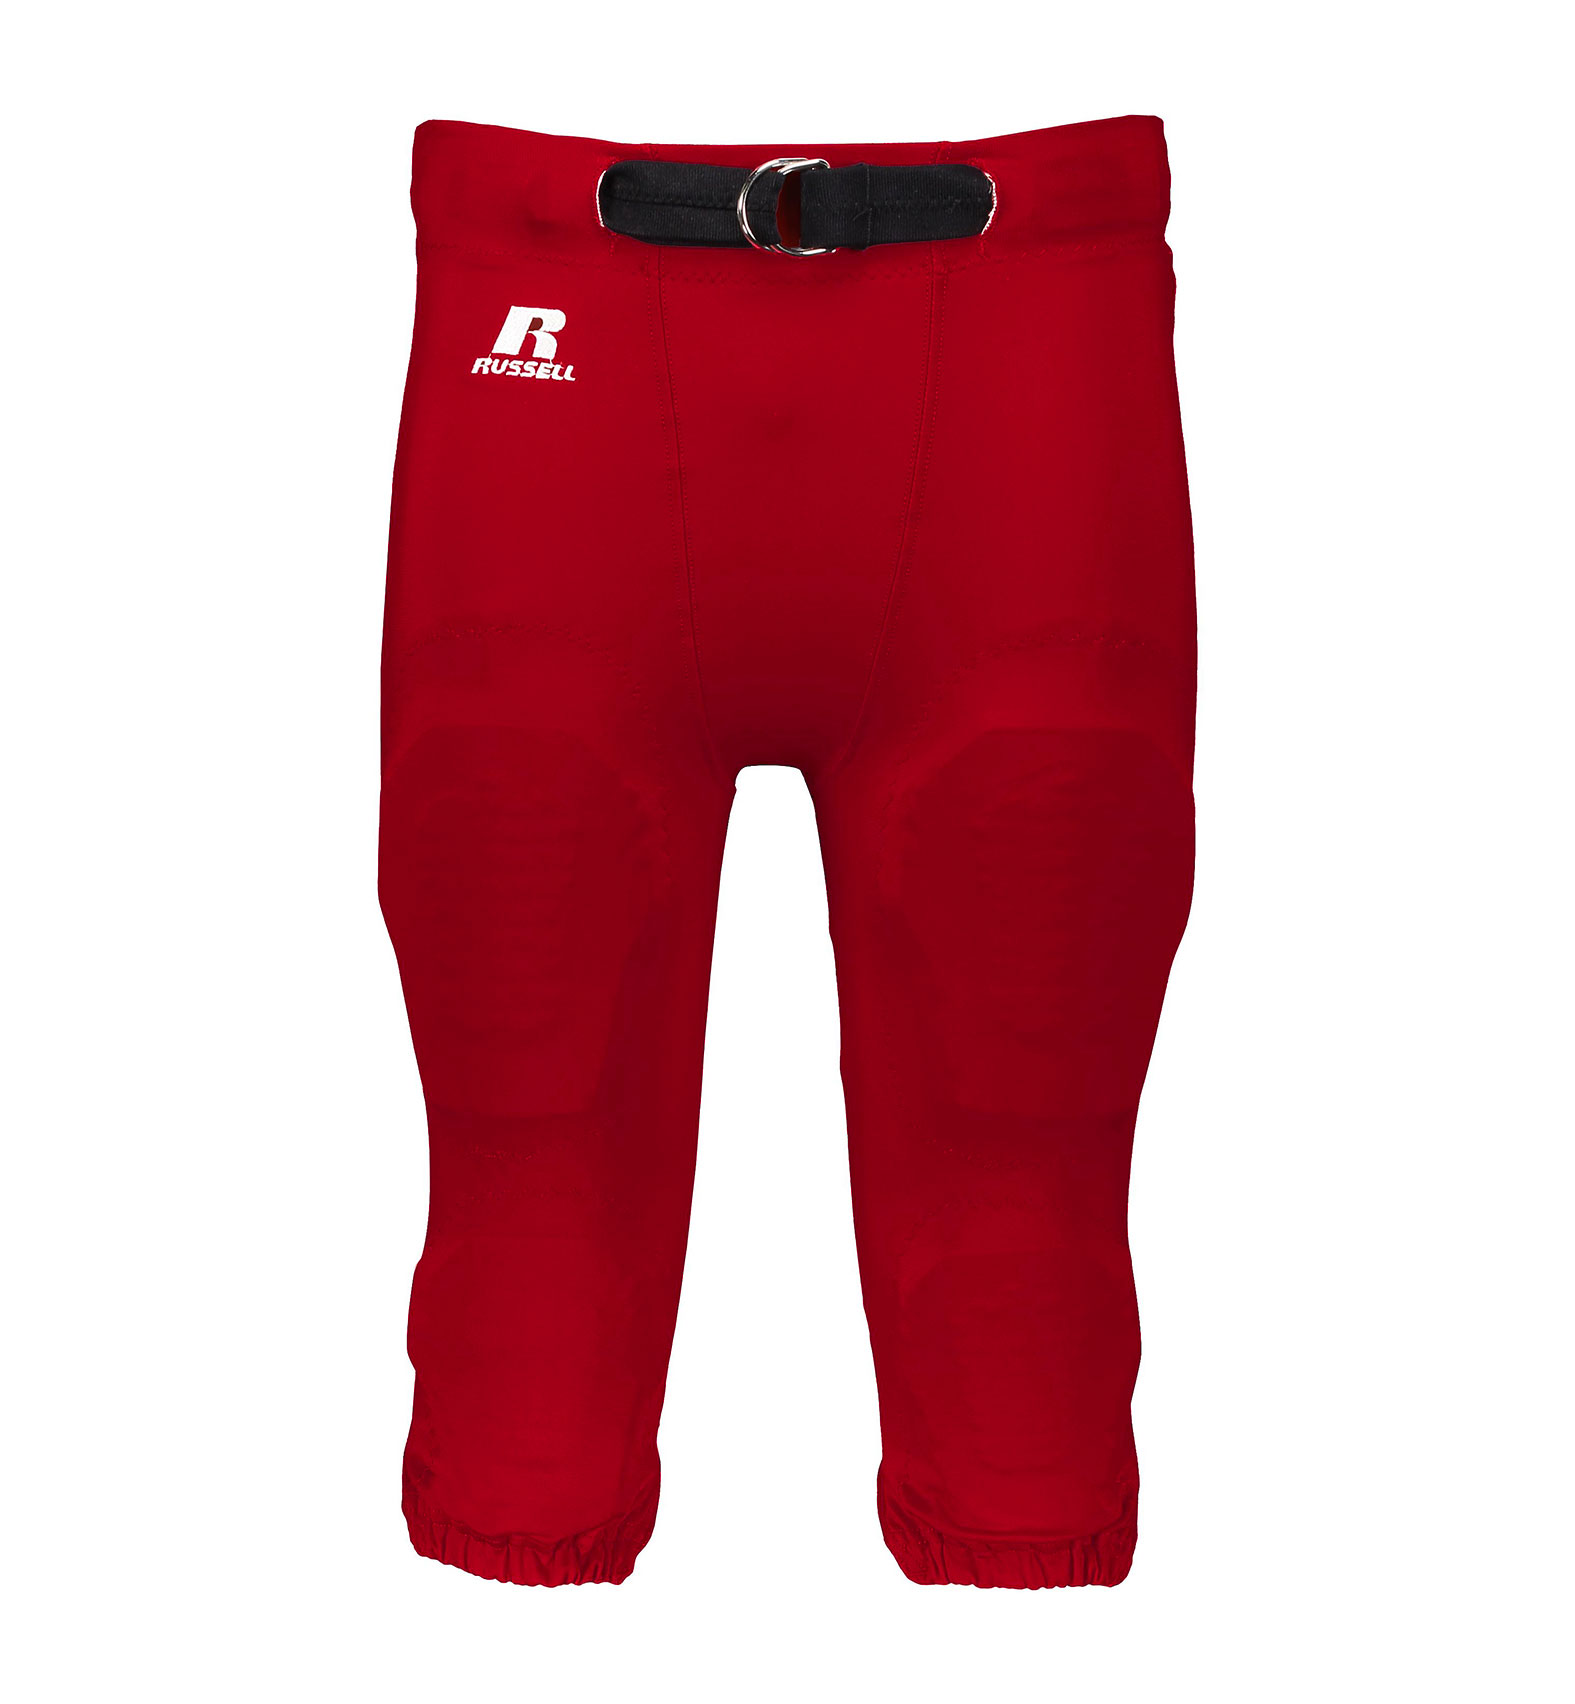 Russell Deluxe Game Pant